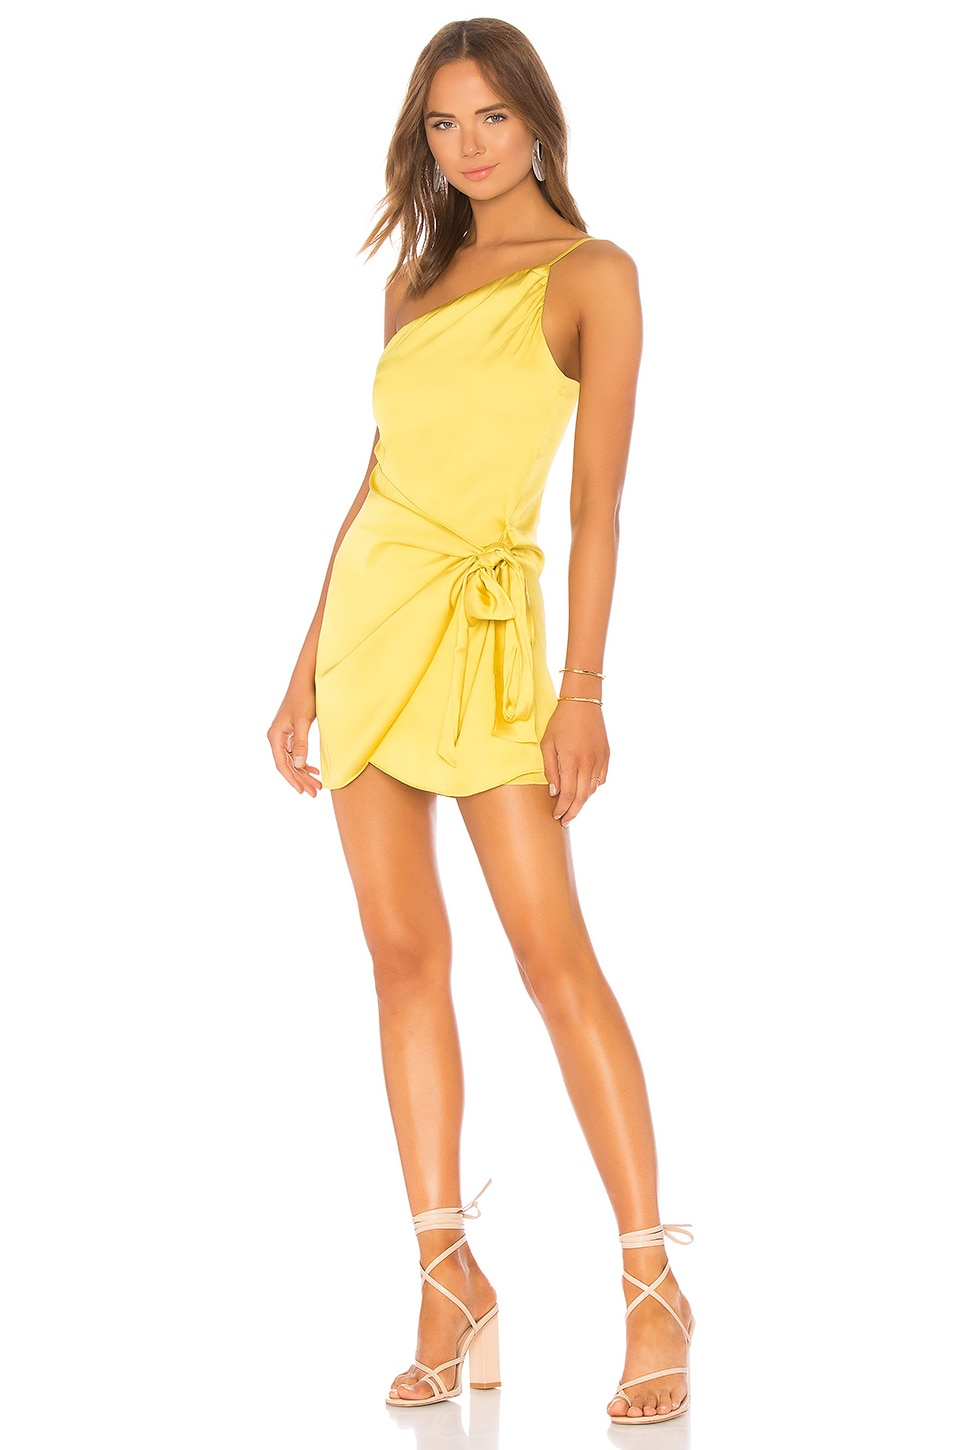 Karen Mini Dress                   Lovers + Friends                                                                                                                             CA$ 219.70 8